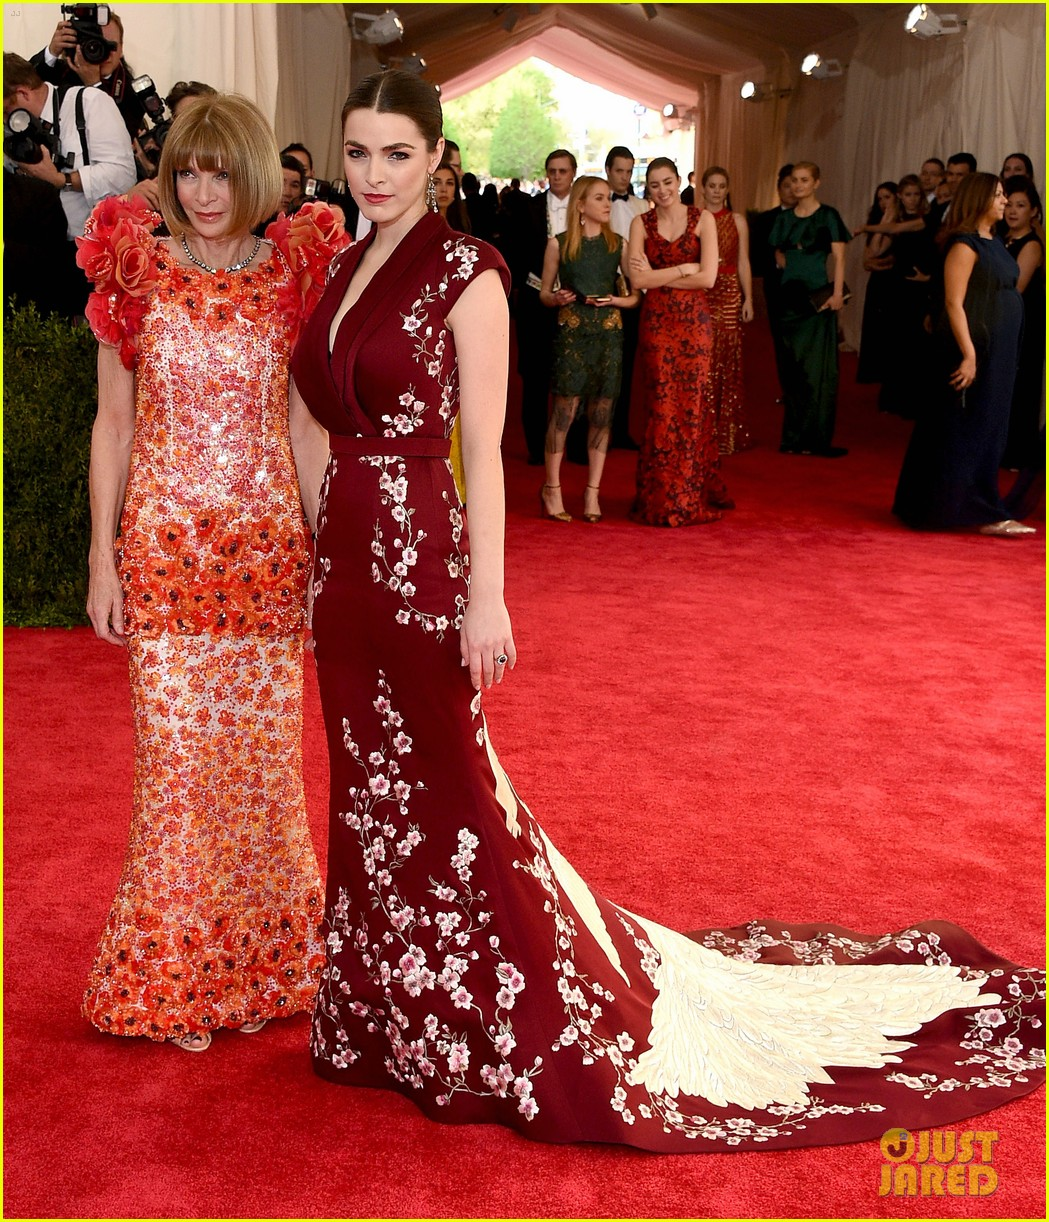 Anna Wintour and her daughter Bee Shaffer at the 2015 Met Gala. Image: Just Jared.